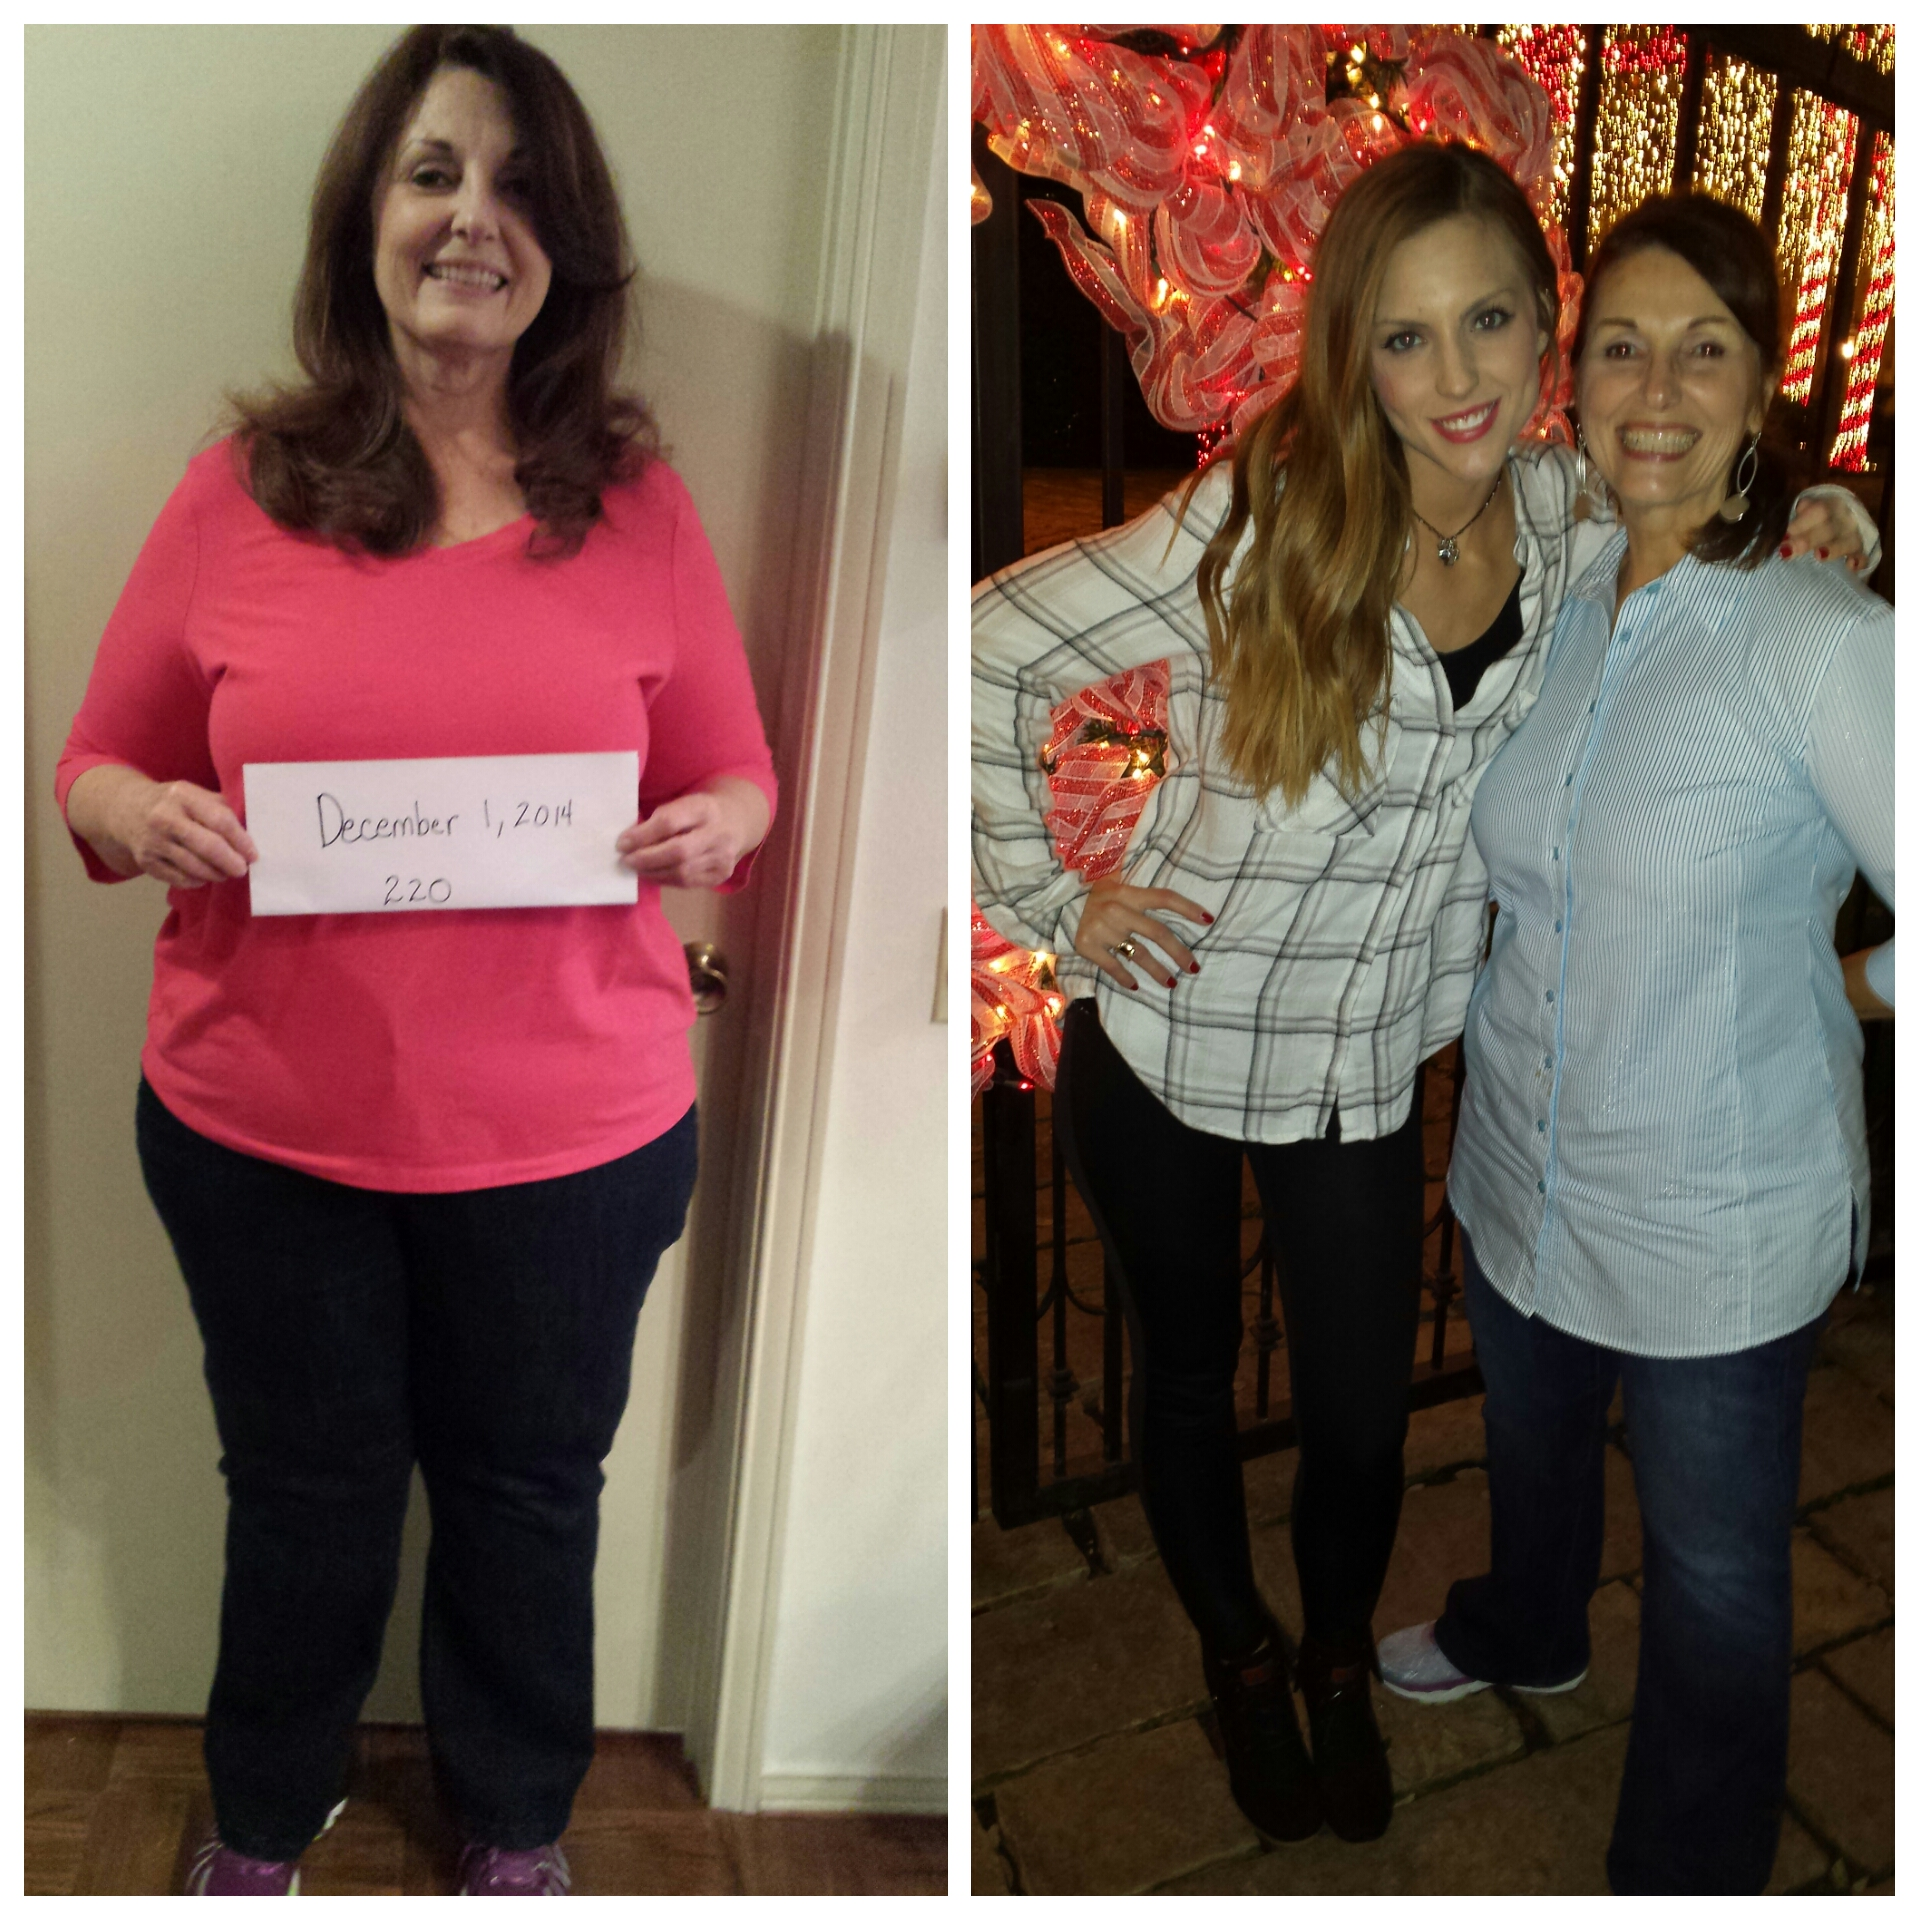 Debbie first fat pic with Christmas 2015 picture